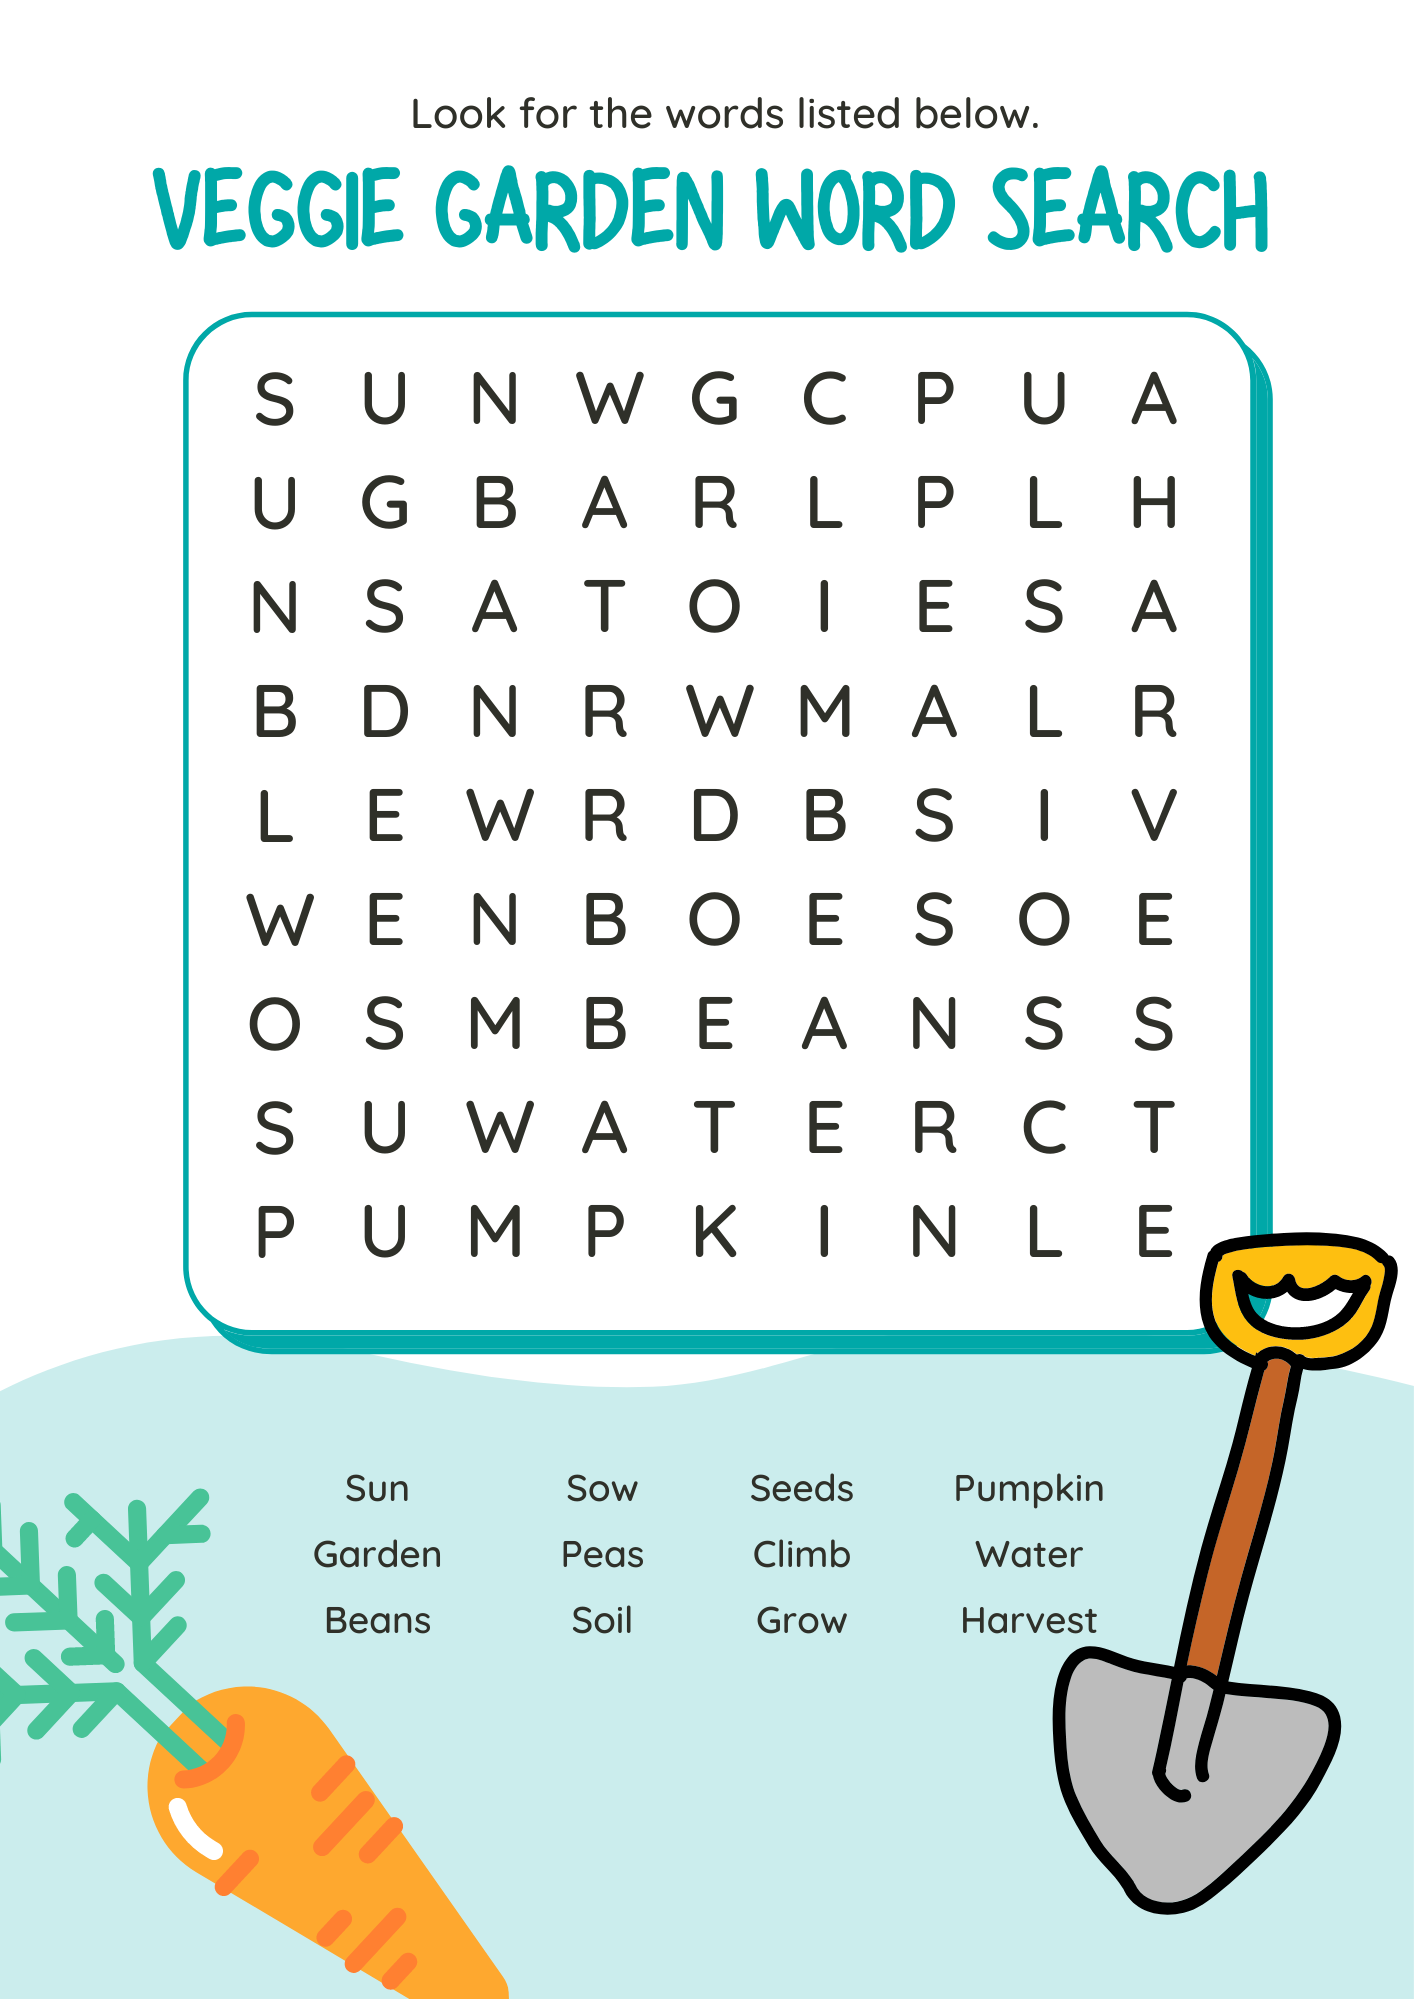 Veggie garden word search